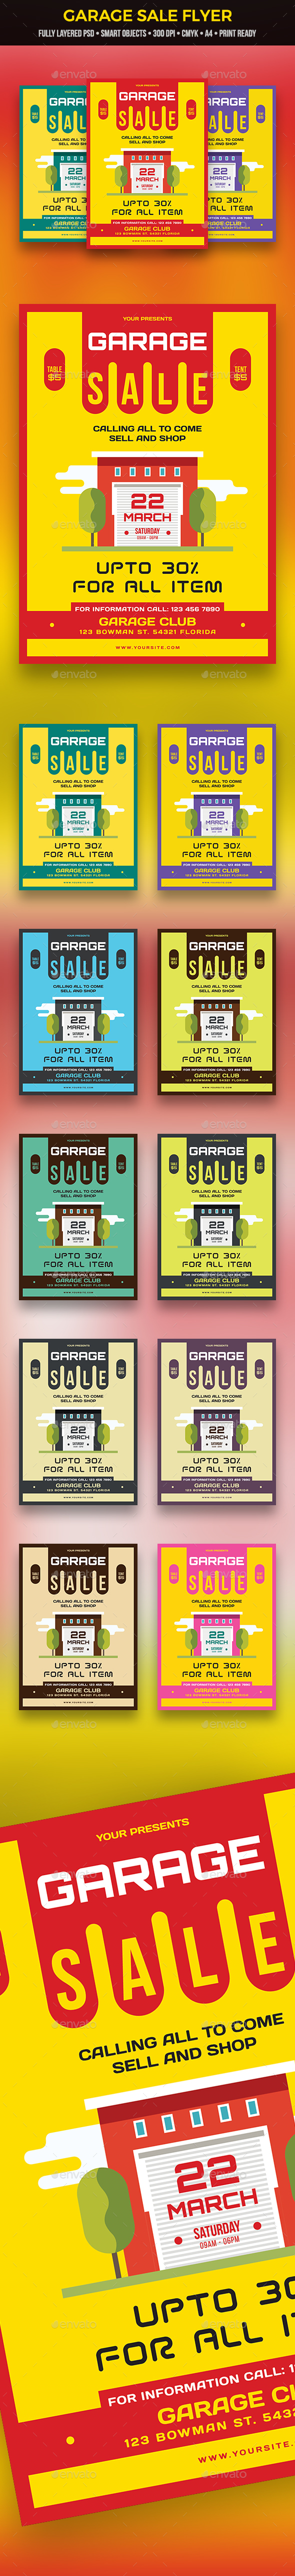 Garage Sale Flyer - Commerce Flyers